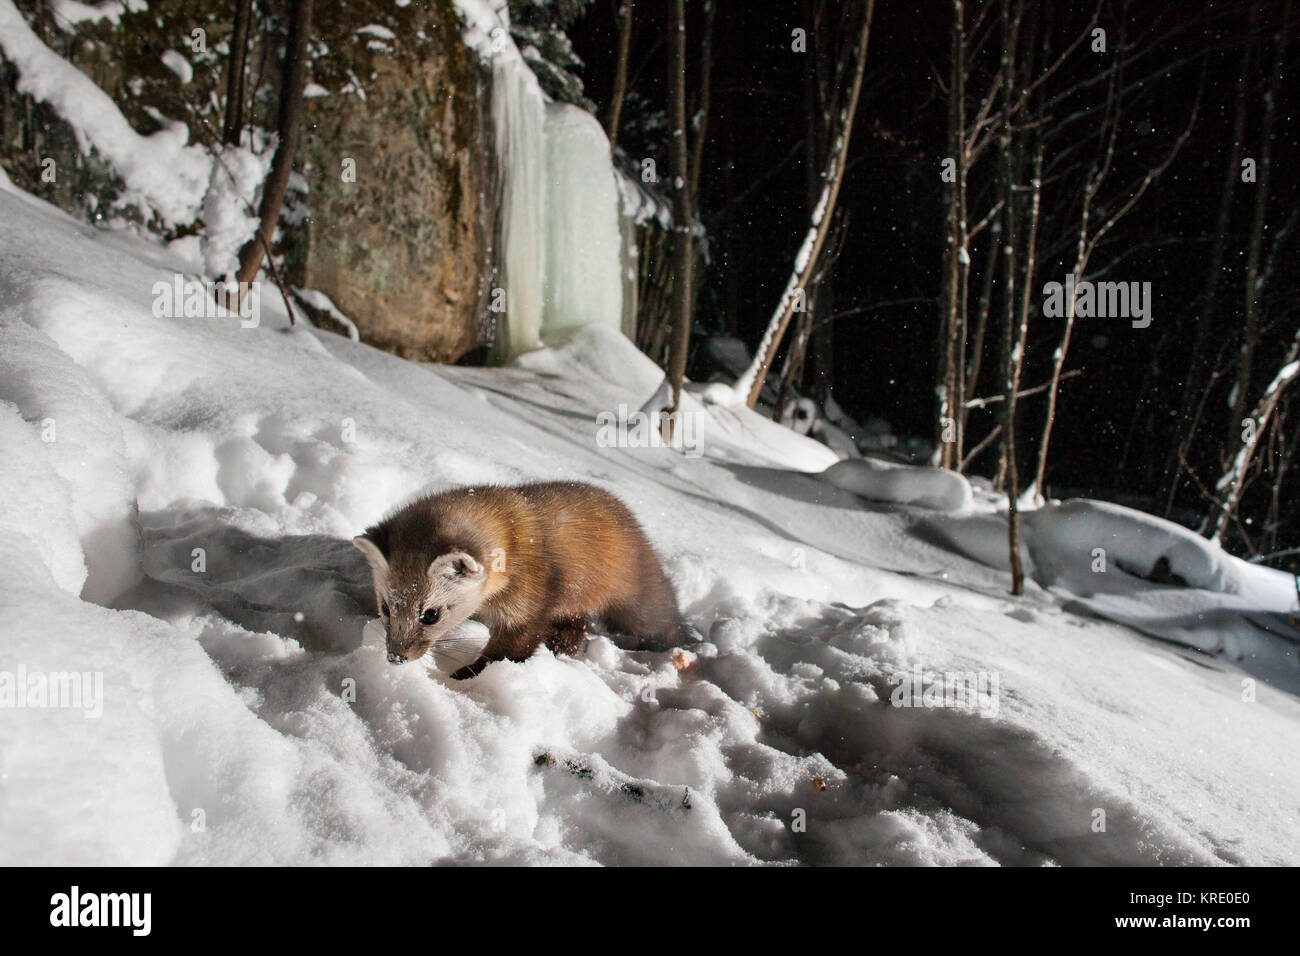 MAYNOOTH, ONTARIO, CANADA - December 18, 2017: A marten (Martes americana), part of the Weasel family / Mustelidae - Stock Image